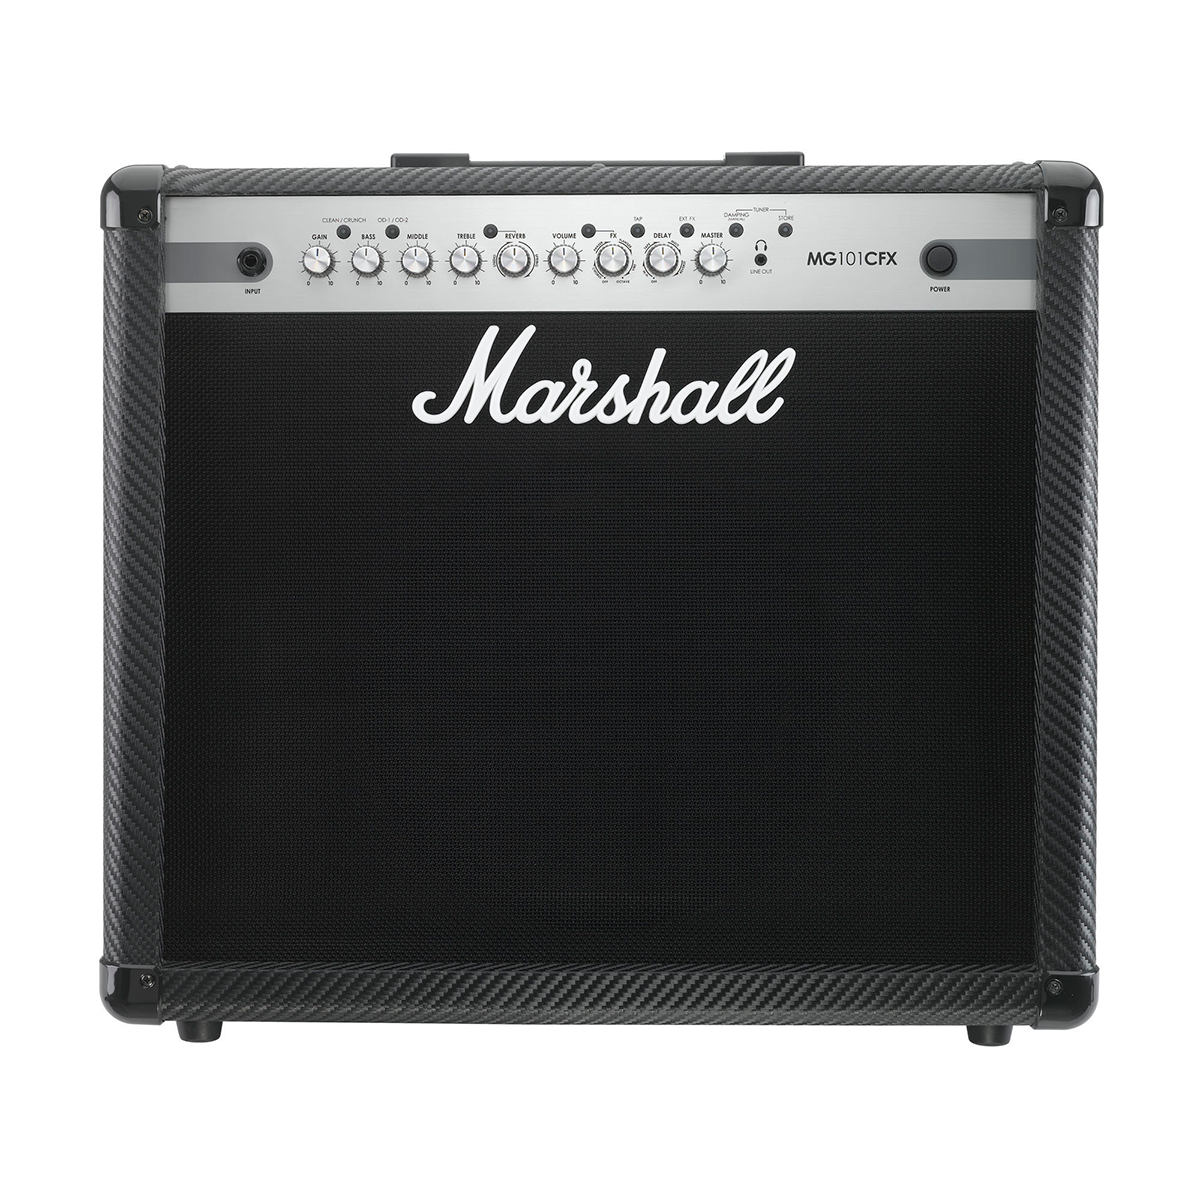 Marshall MG101CFX guitarforstærker